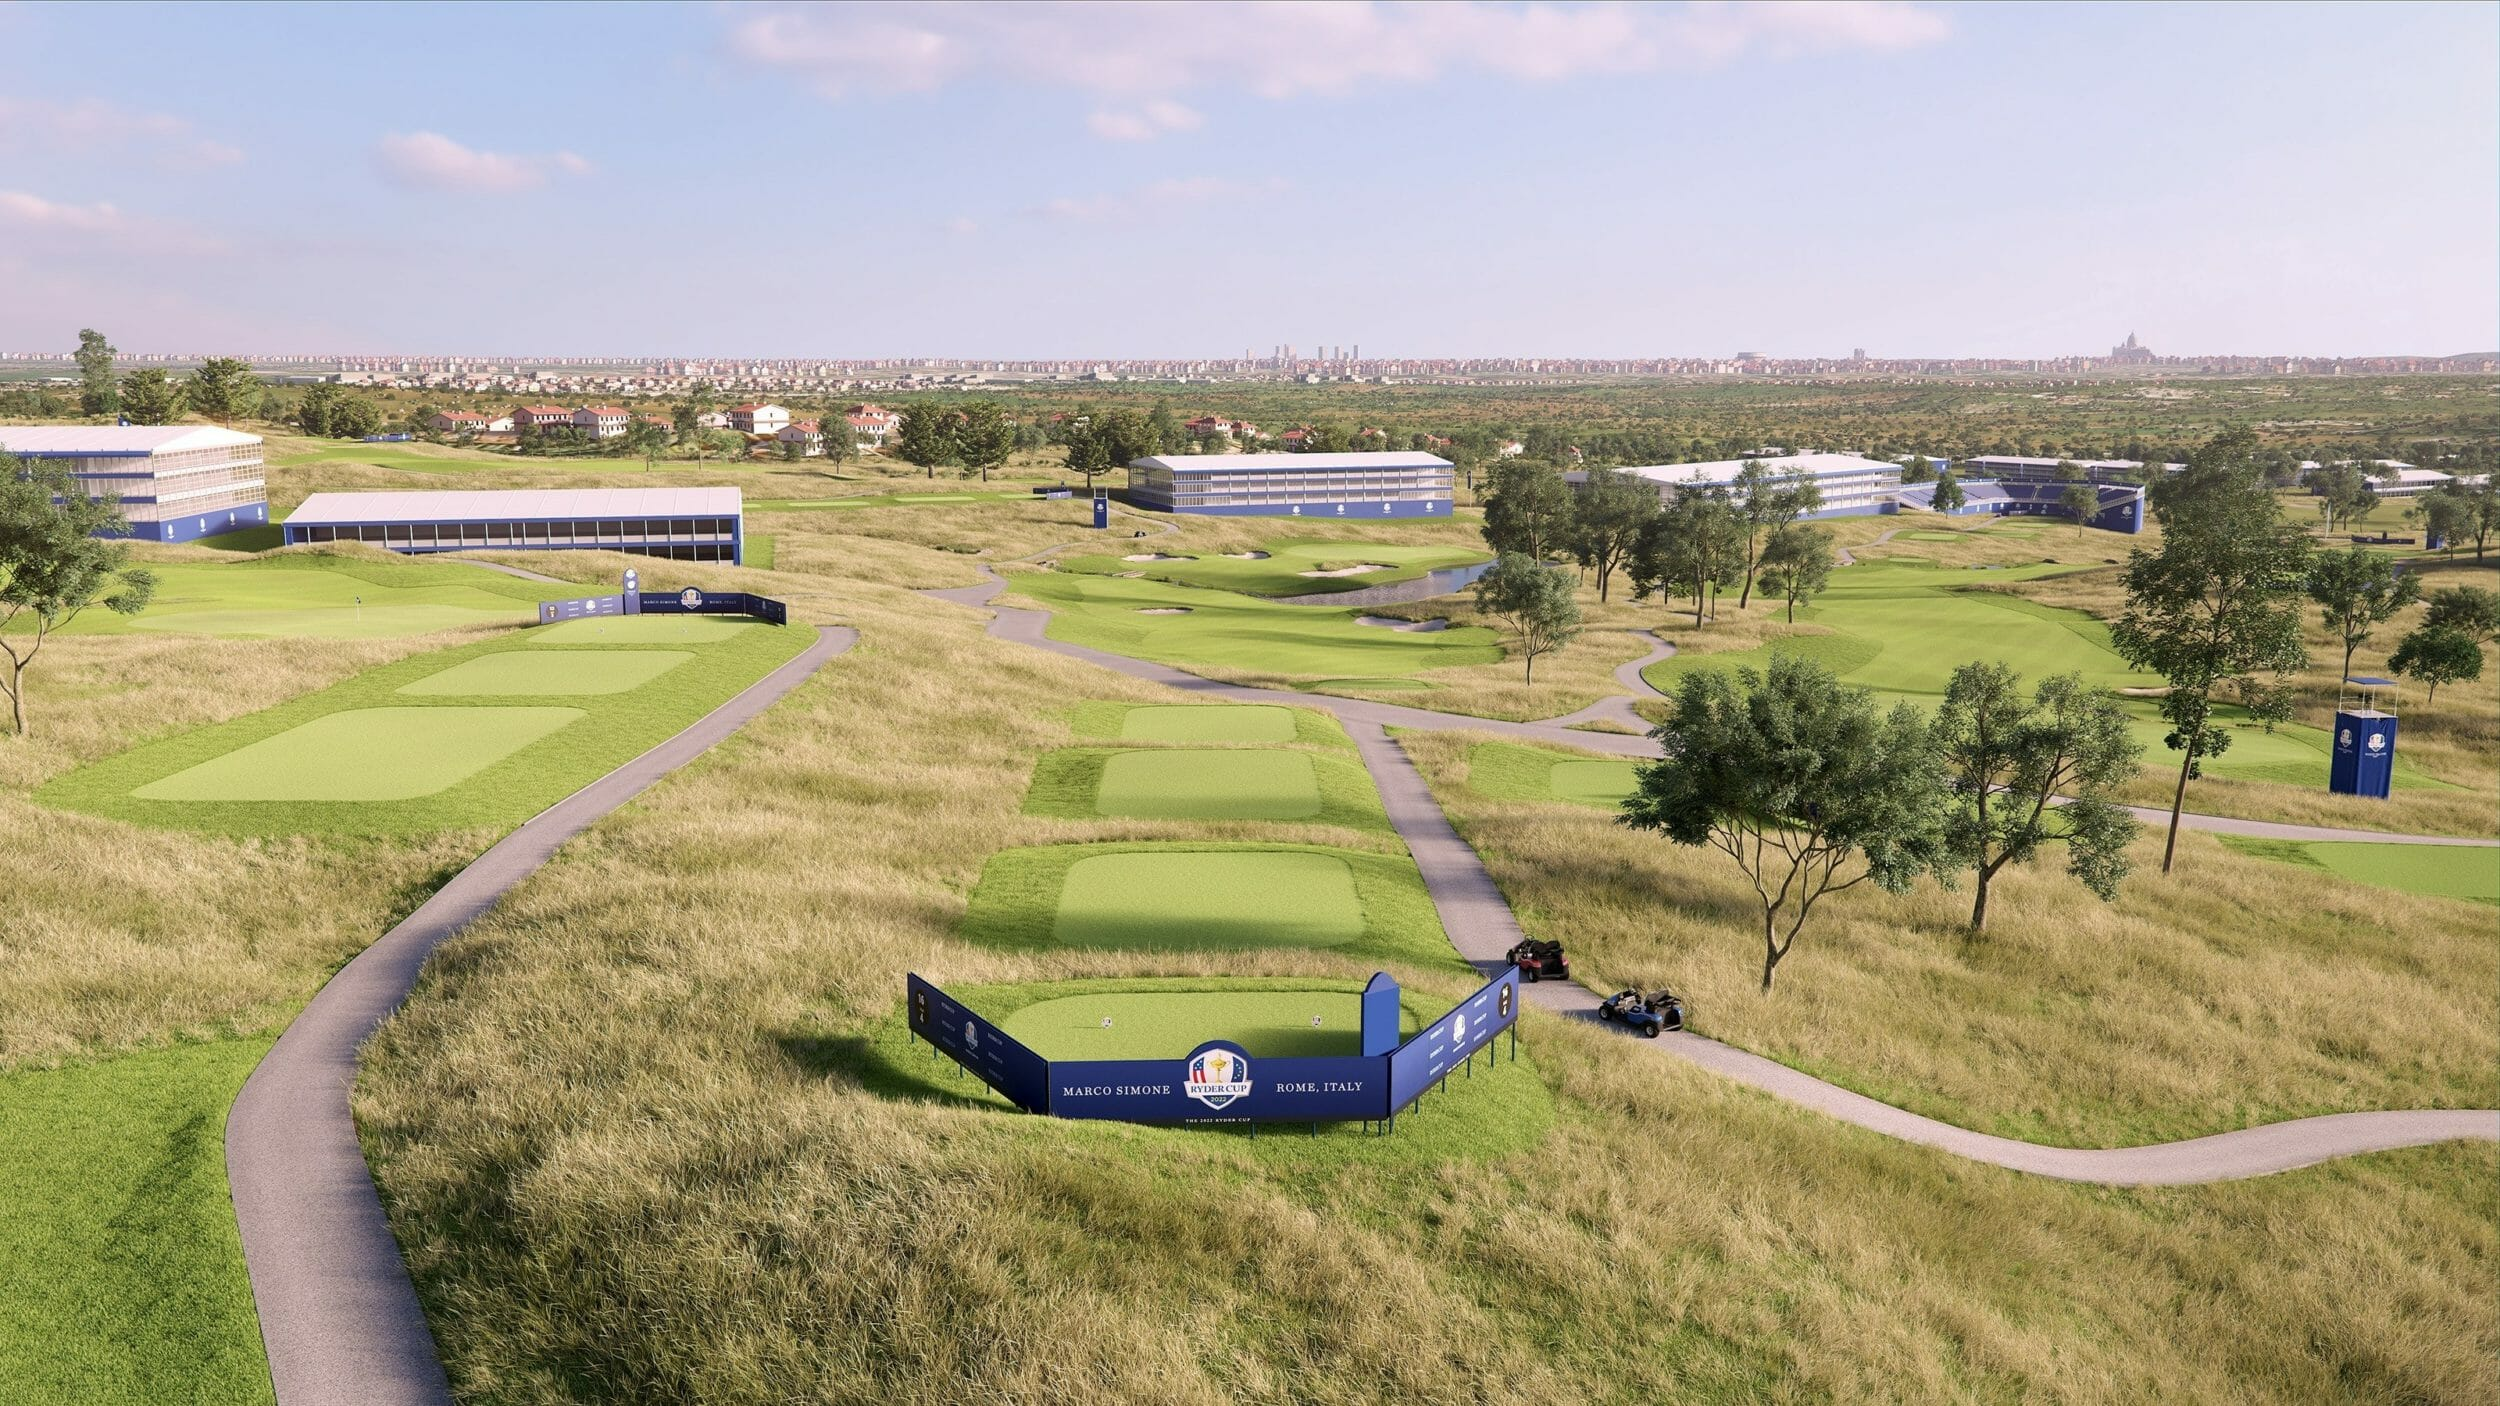 Flyover virtual reality view of the sixteenth hole of the Marco Simone golf course